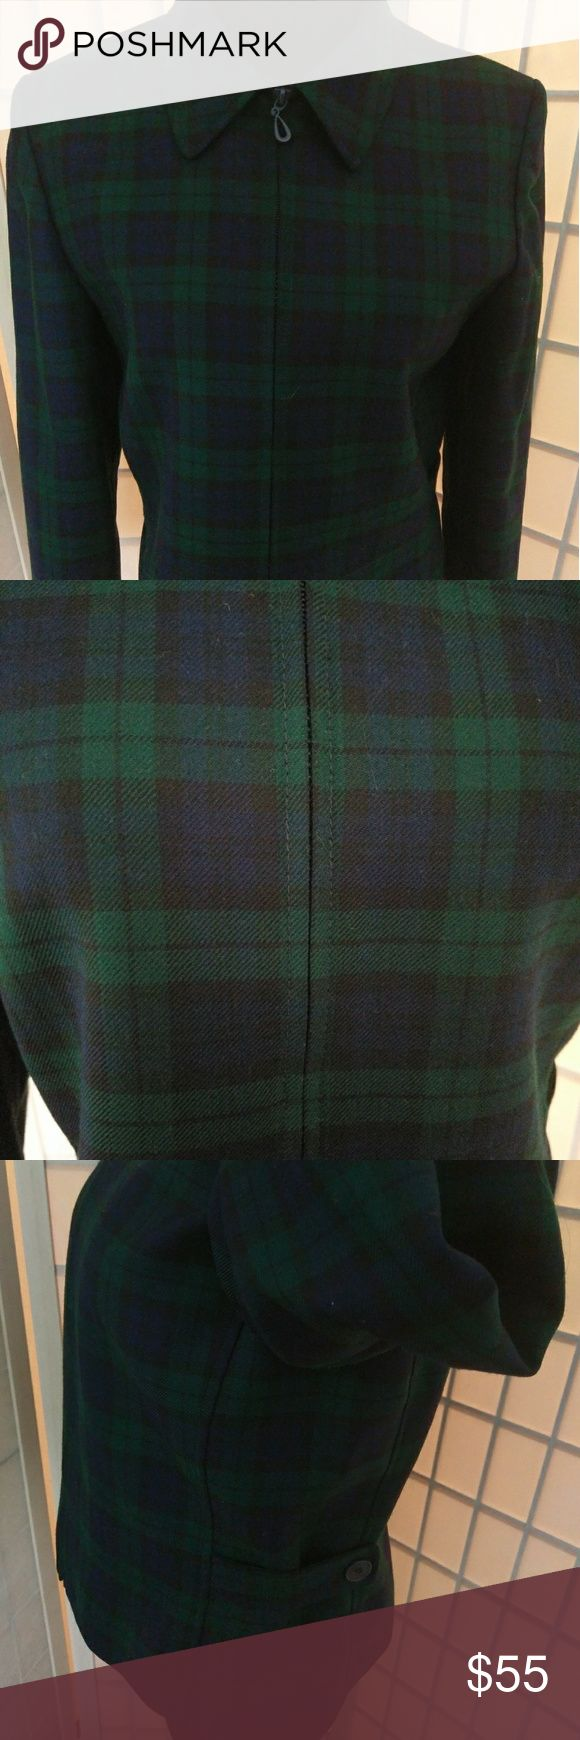 "Vintage Pendleton wool Black watch Tartan jacket Vintage Pendleton wool lined Black Watch Tartan jacket. Blue, green, black plaid. Scotland. Outlander. Punk Rock. Classic. In perfect condition. Size 4, Women's small. 100% Virgin wool outer, lined. Made in USA. Portland, Oregon. Collar can be worn up or down. Zip up. 23.5"" long. 18.5"" across laying flat from pit to pit. Pendleton Jackets & Coats"